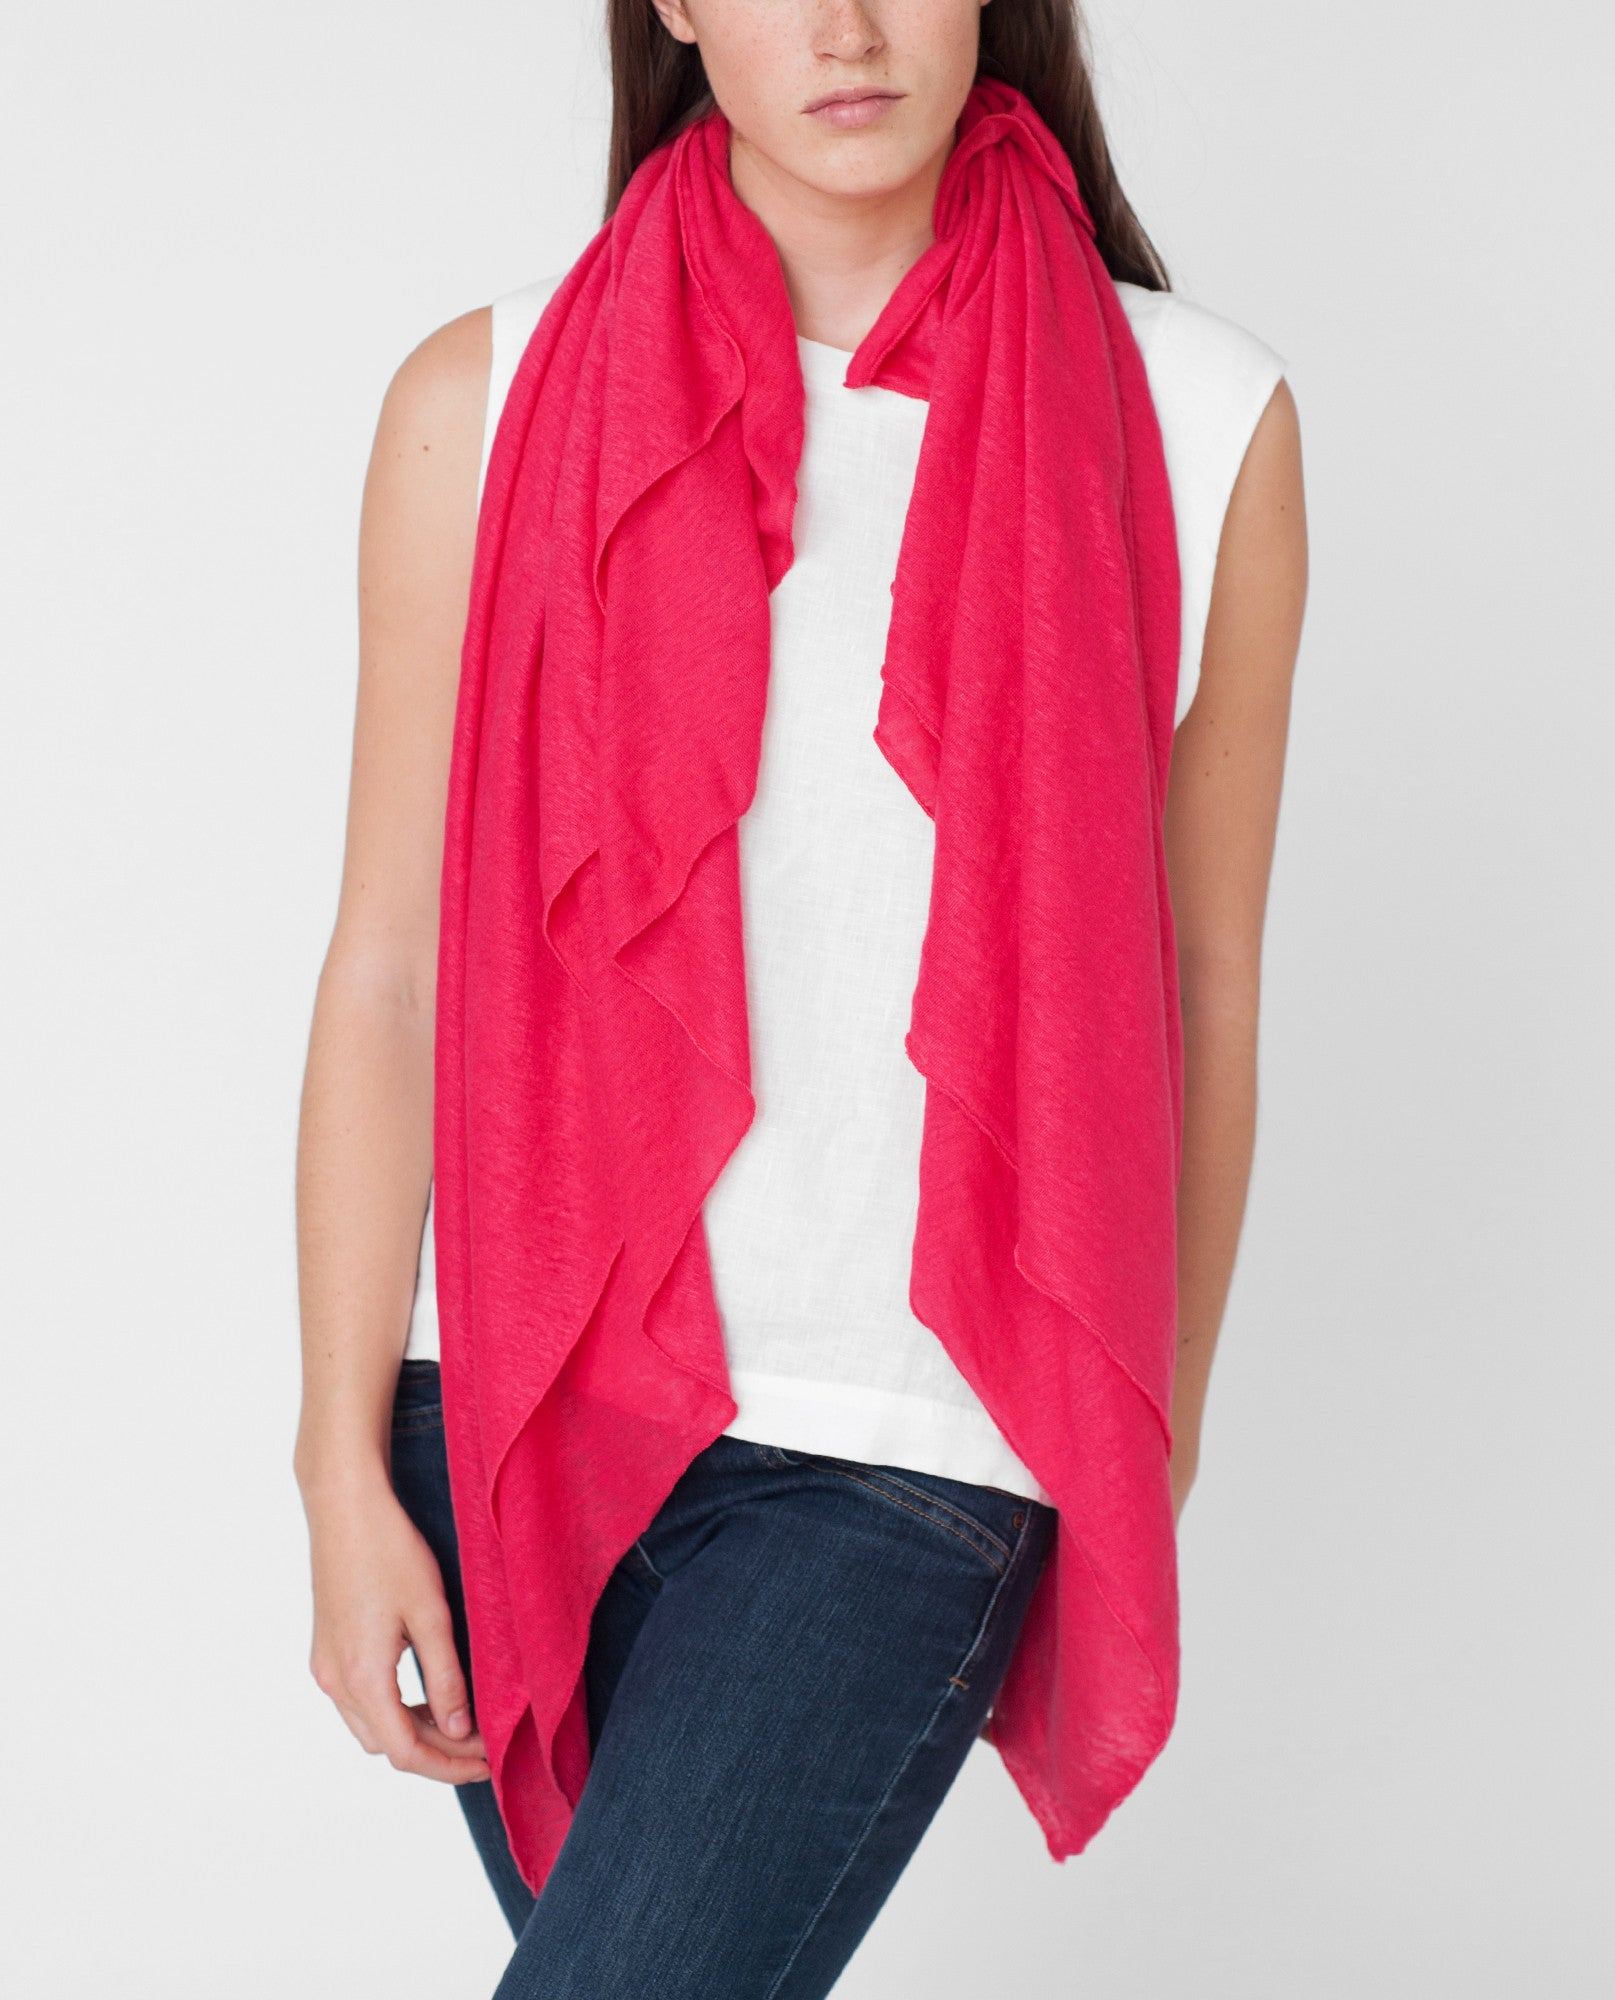 JUNO Linen Jersey Scarf from Beaumont Organic